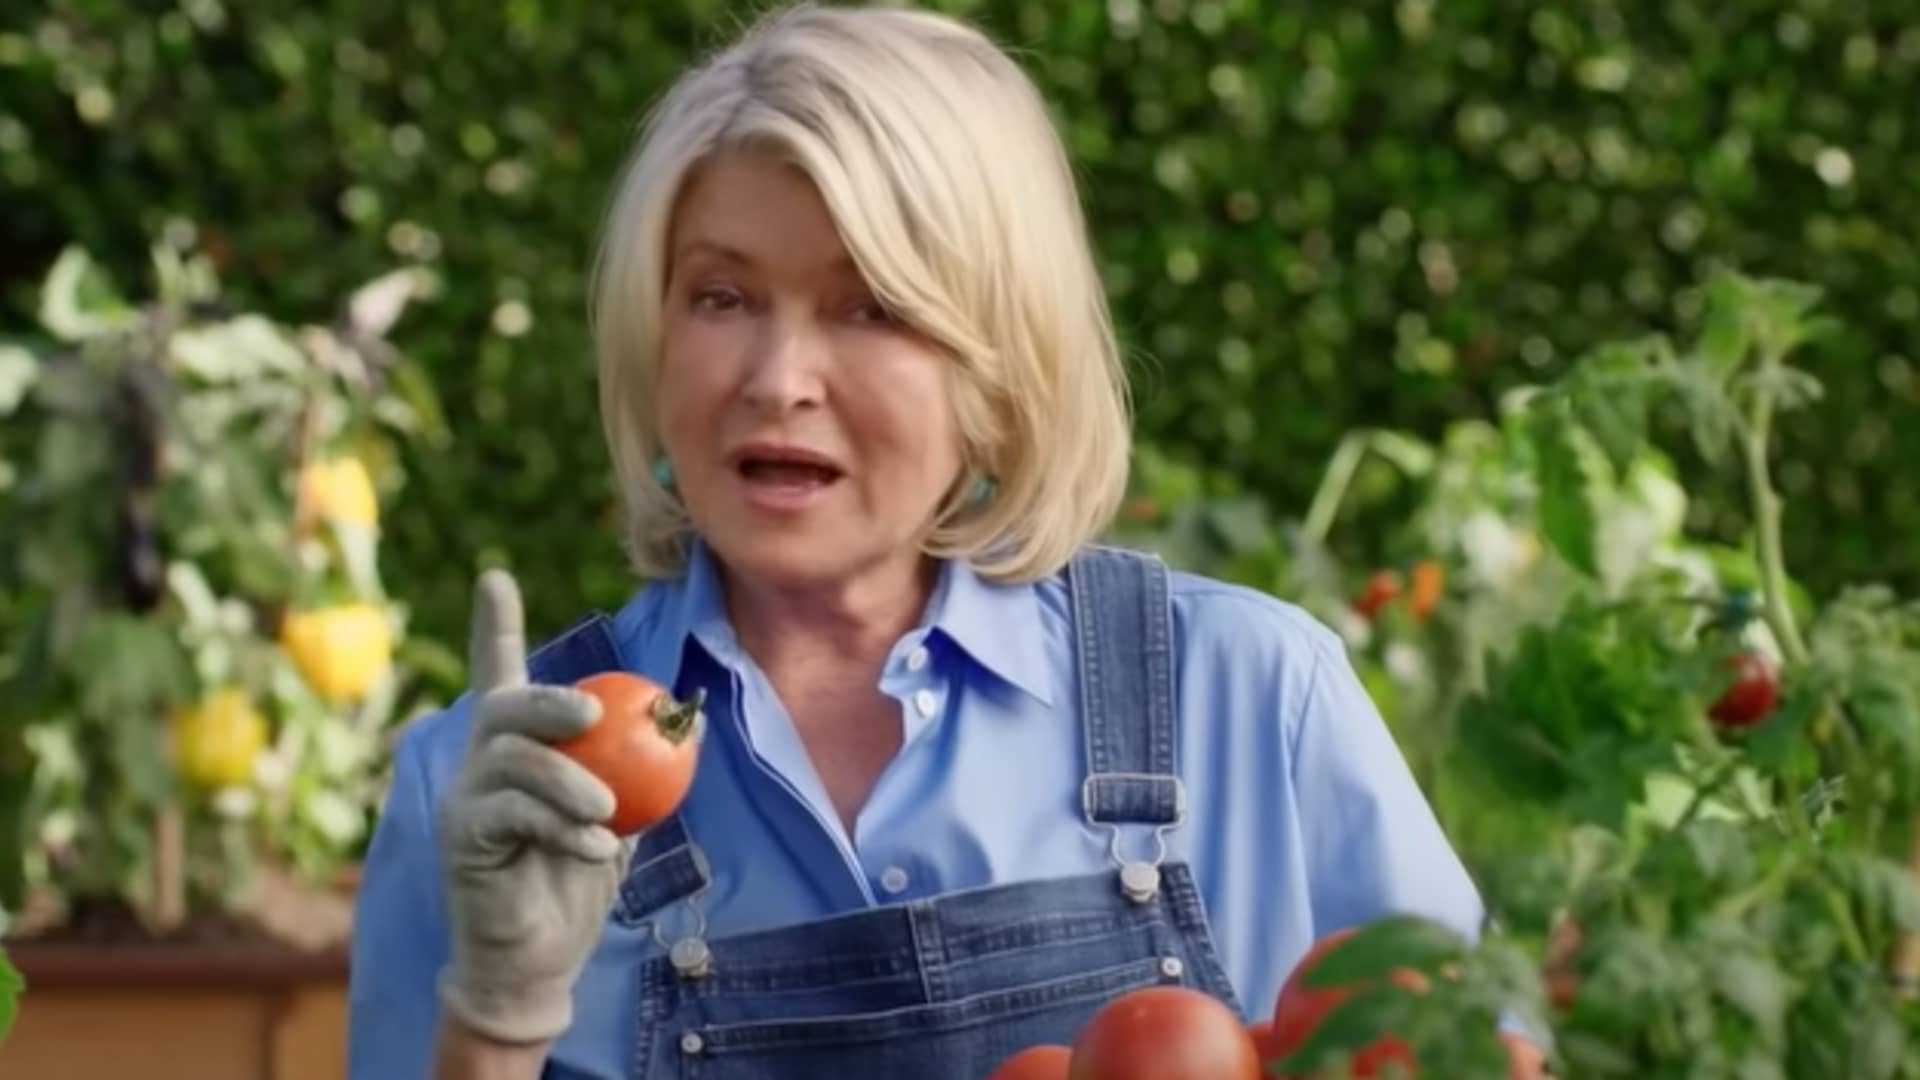 Still from Scotts Miracle-Gro Super Bowl commercial.